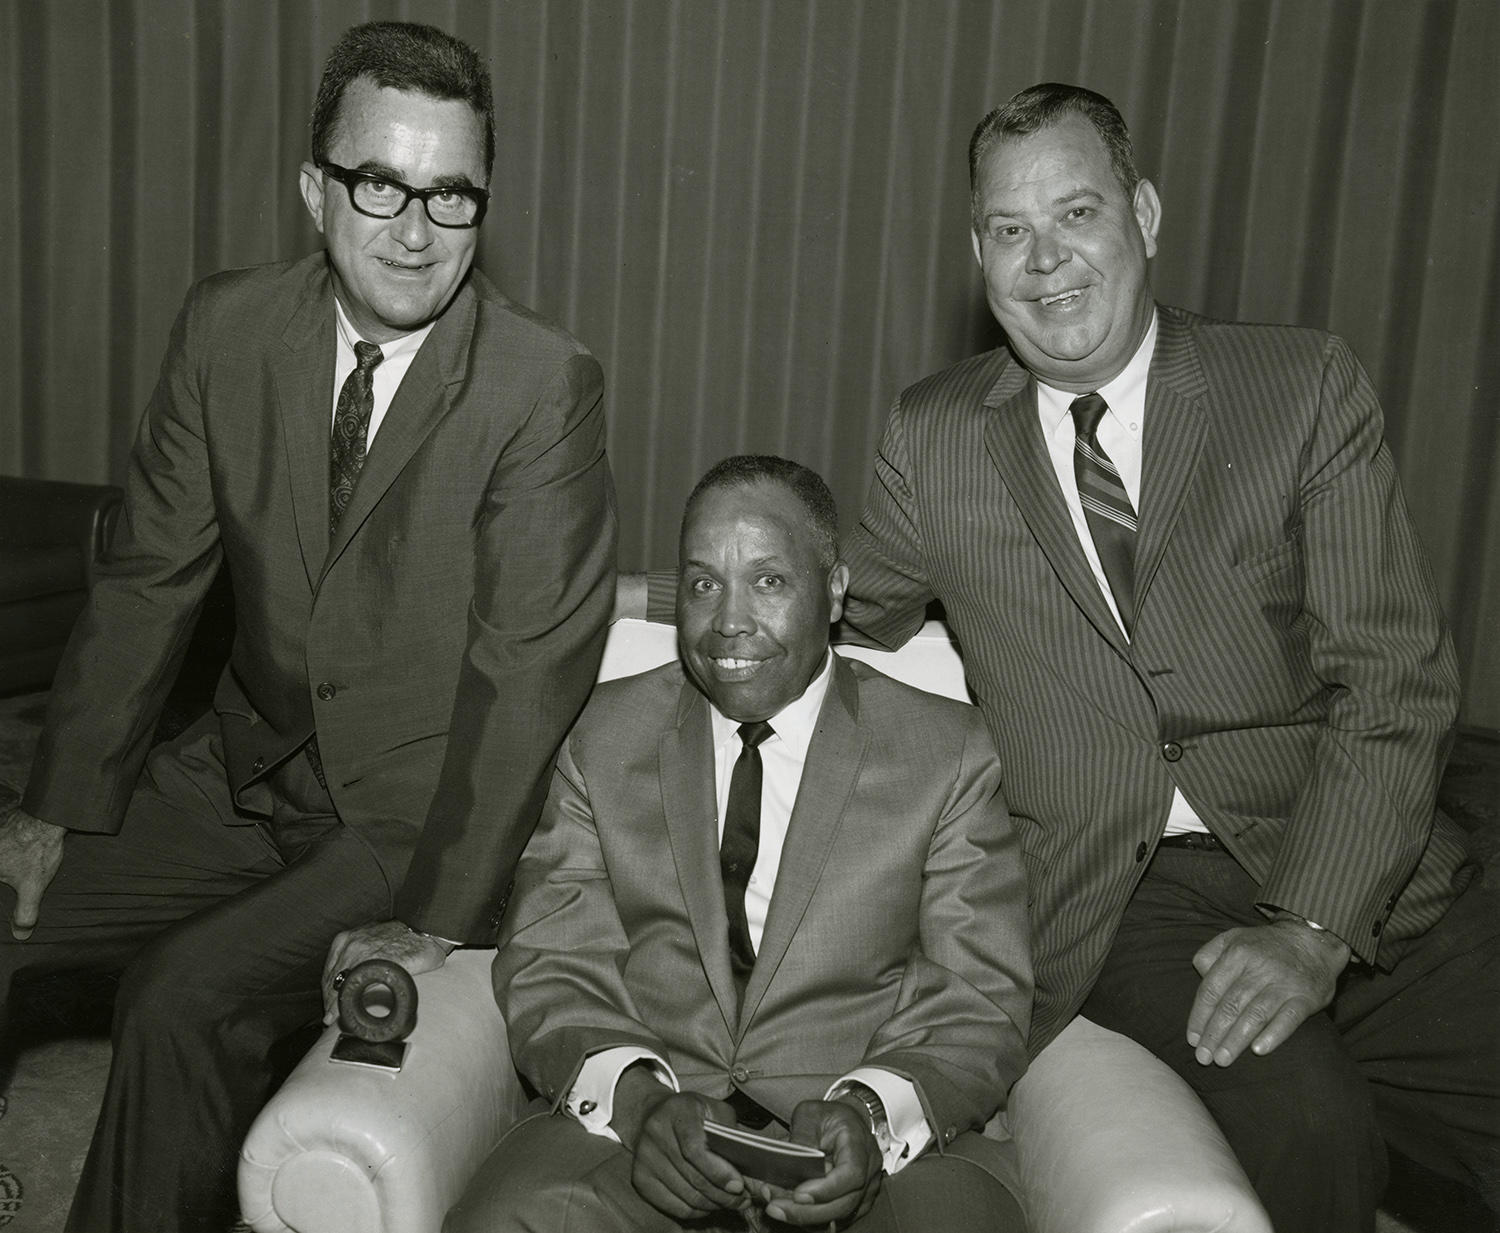 """Emmett Ashford (center) poses with executives Howard Fox (left) and Calvin Griffith. <a href=""""http://collection.baseballhall.org/islandora/object/islandora%3A397295"""">PASTIME</a> (National Baseball Hall of Fame and Museum)"""